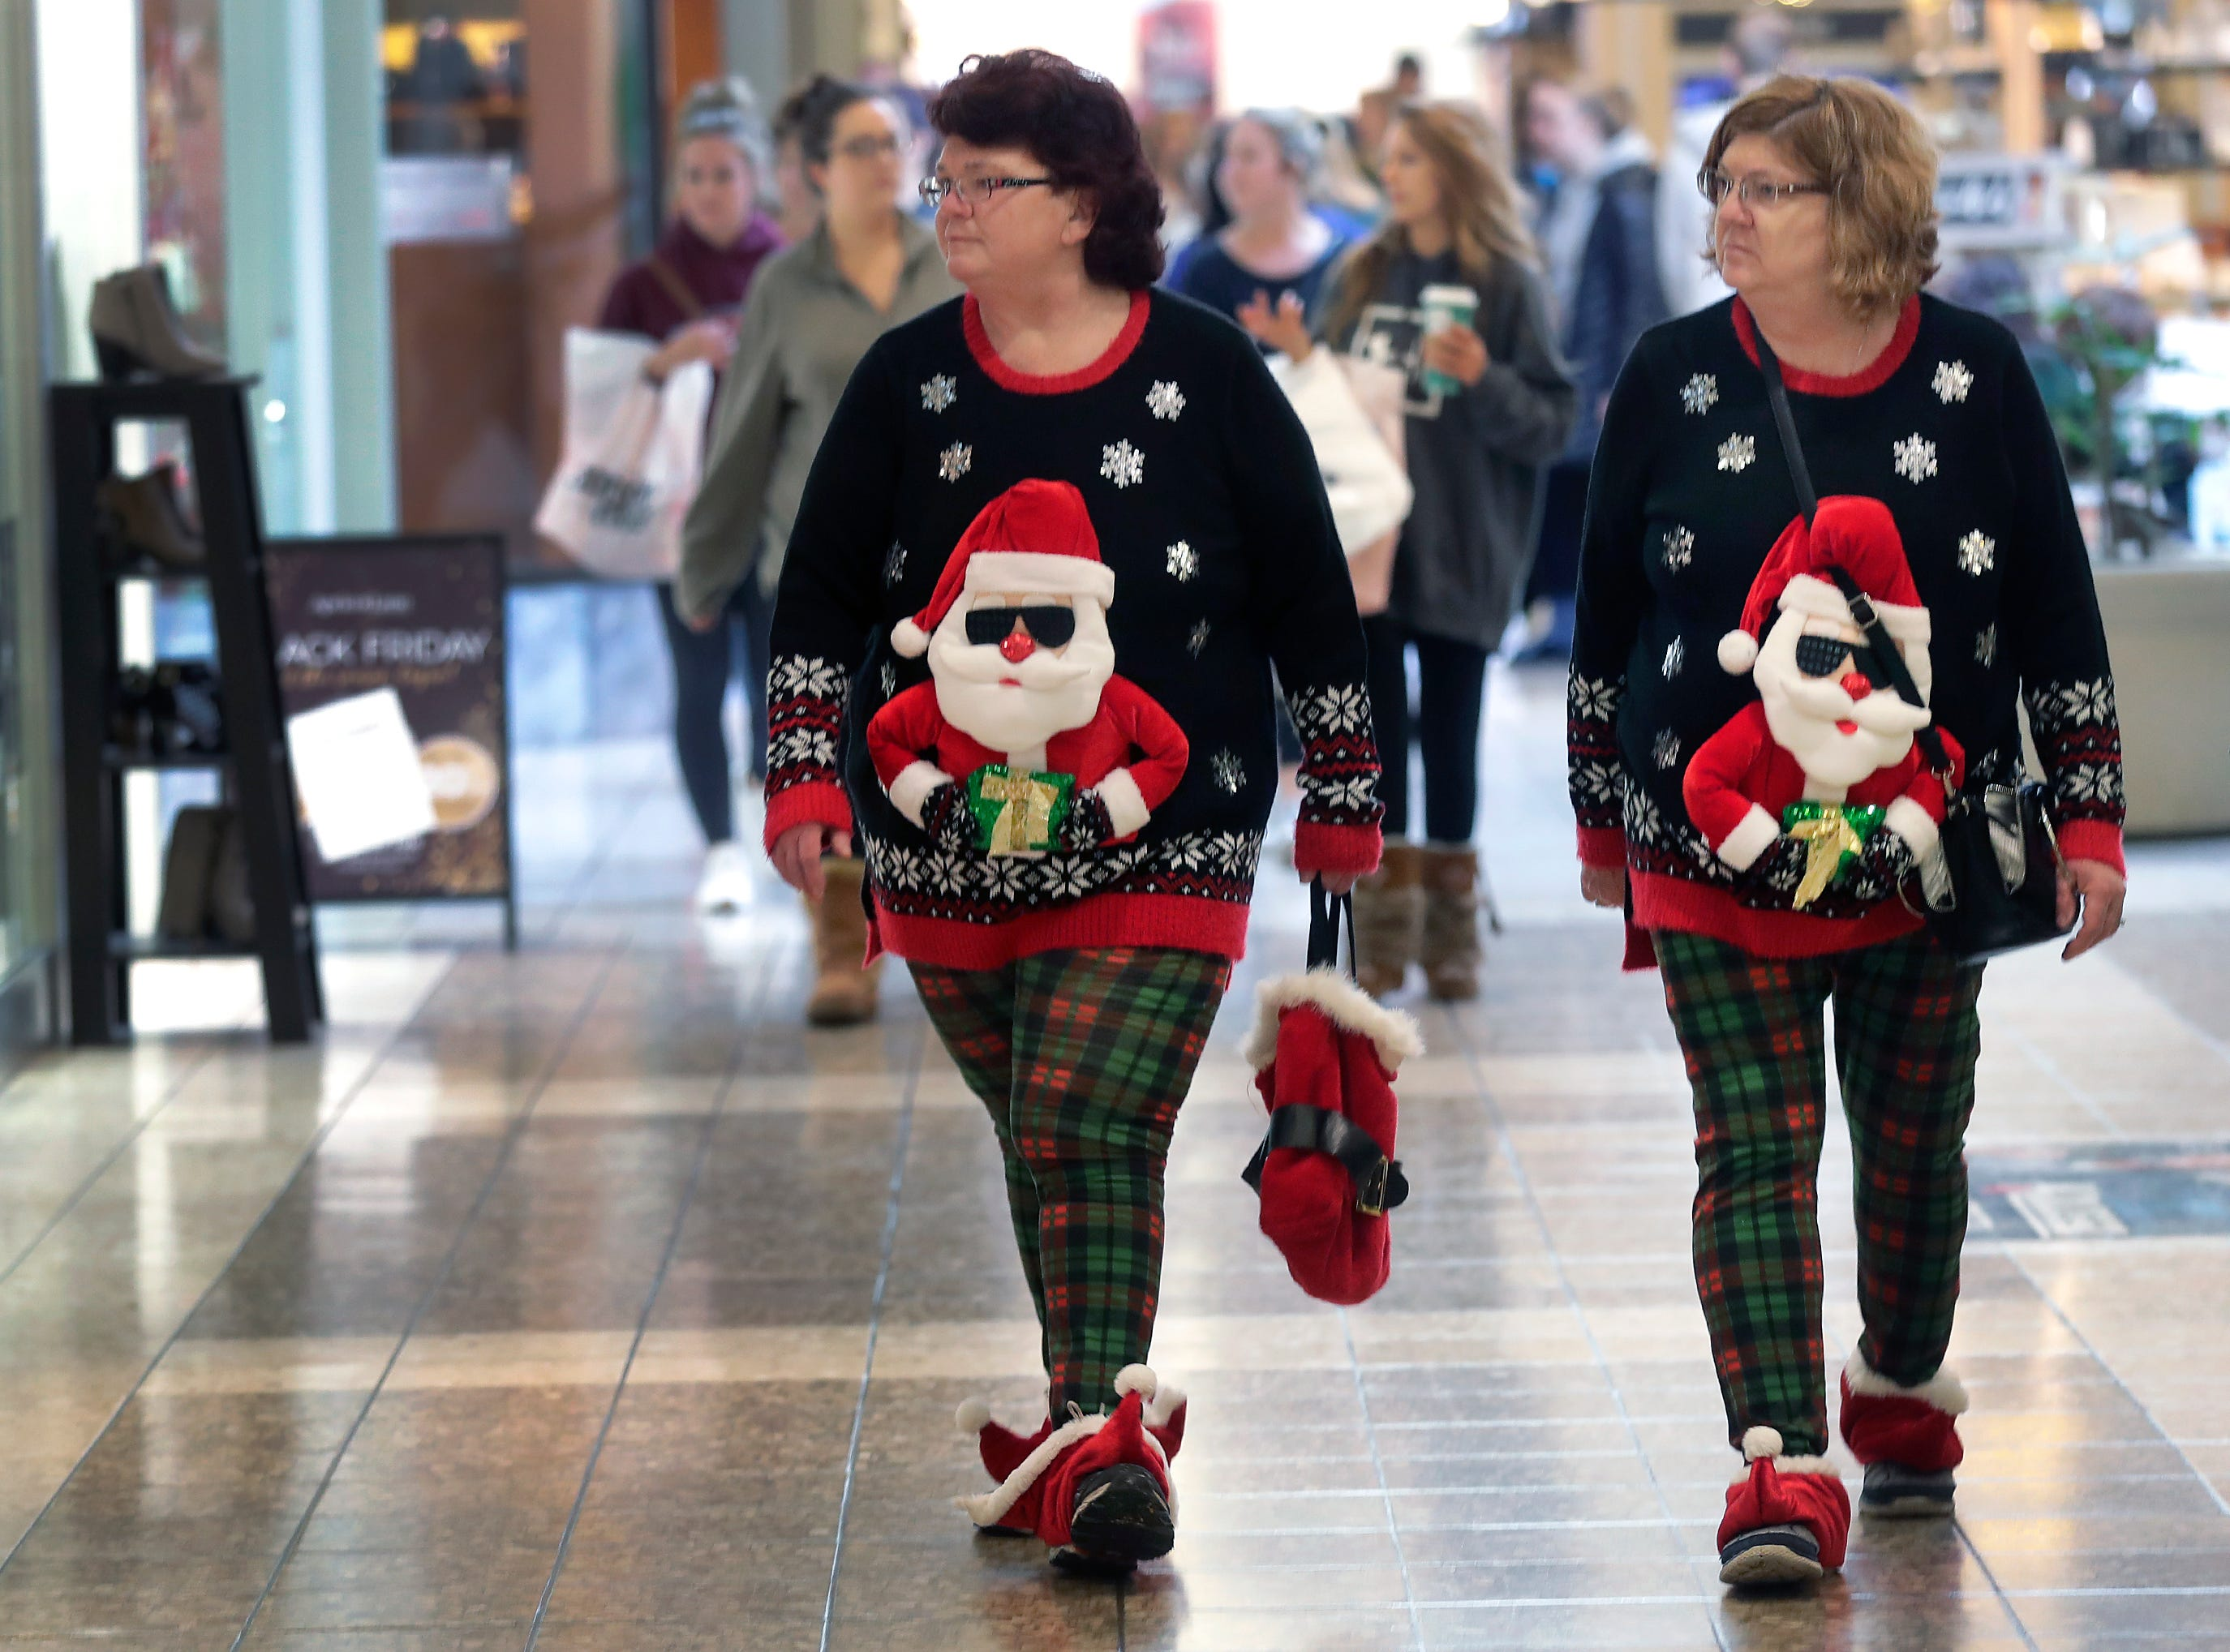 Teresa Black, left, and Alice Keel are dressed for the hoildays while shopping on Black Friday at the Fox River Mall on Nov. 23, 2018 in Grand Chute, Wisc.